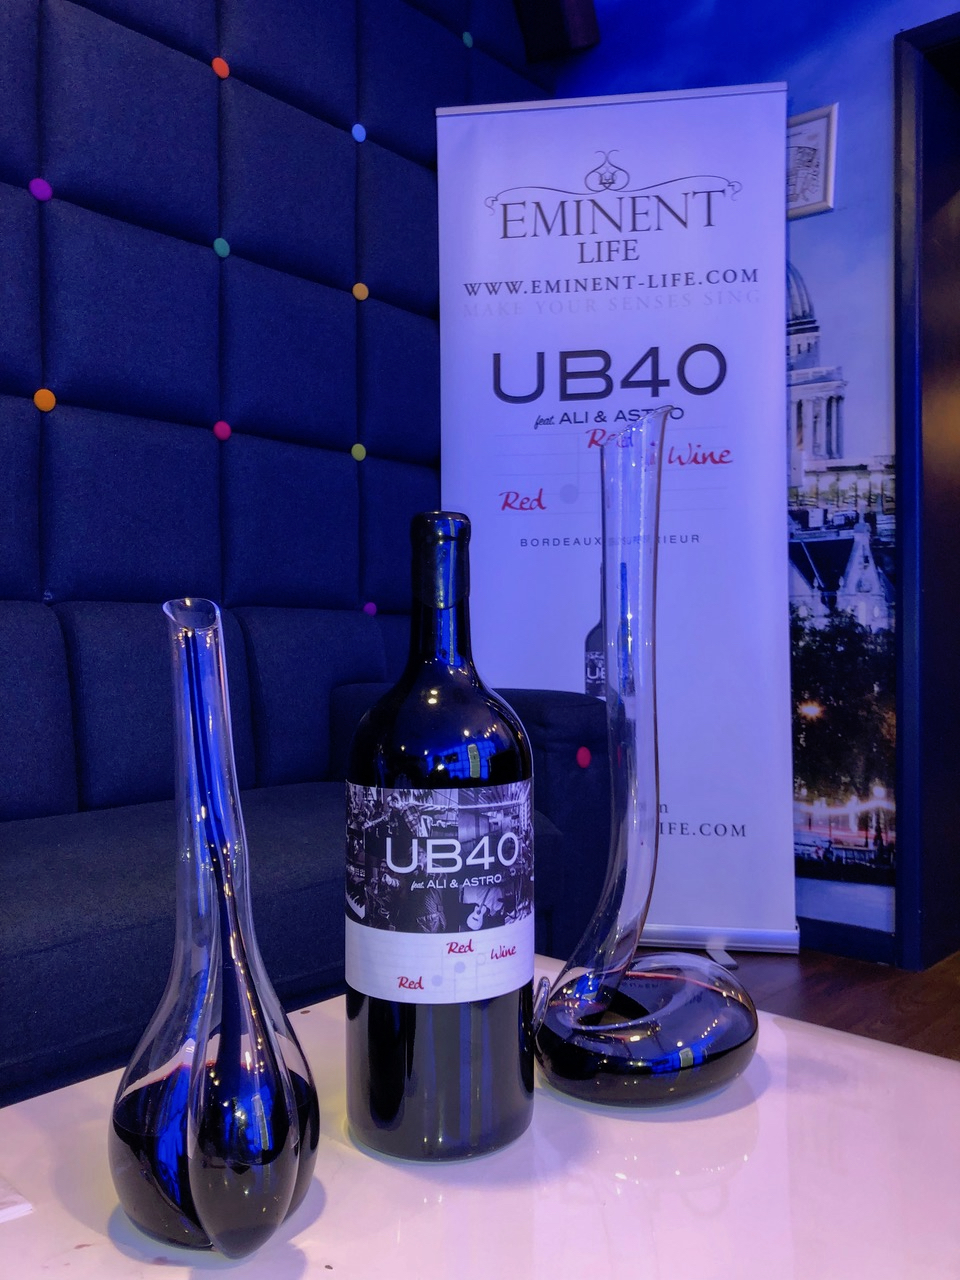 The story behind UB40 with Ali and Astro's Bordeaux Red Red wine